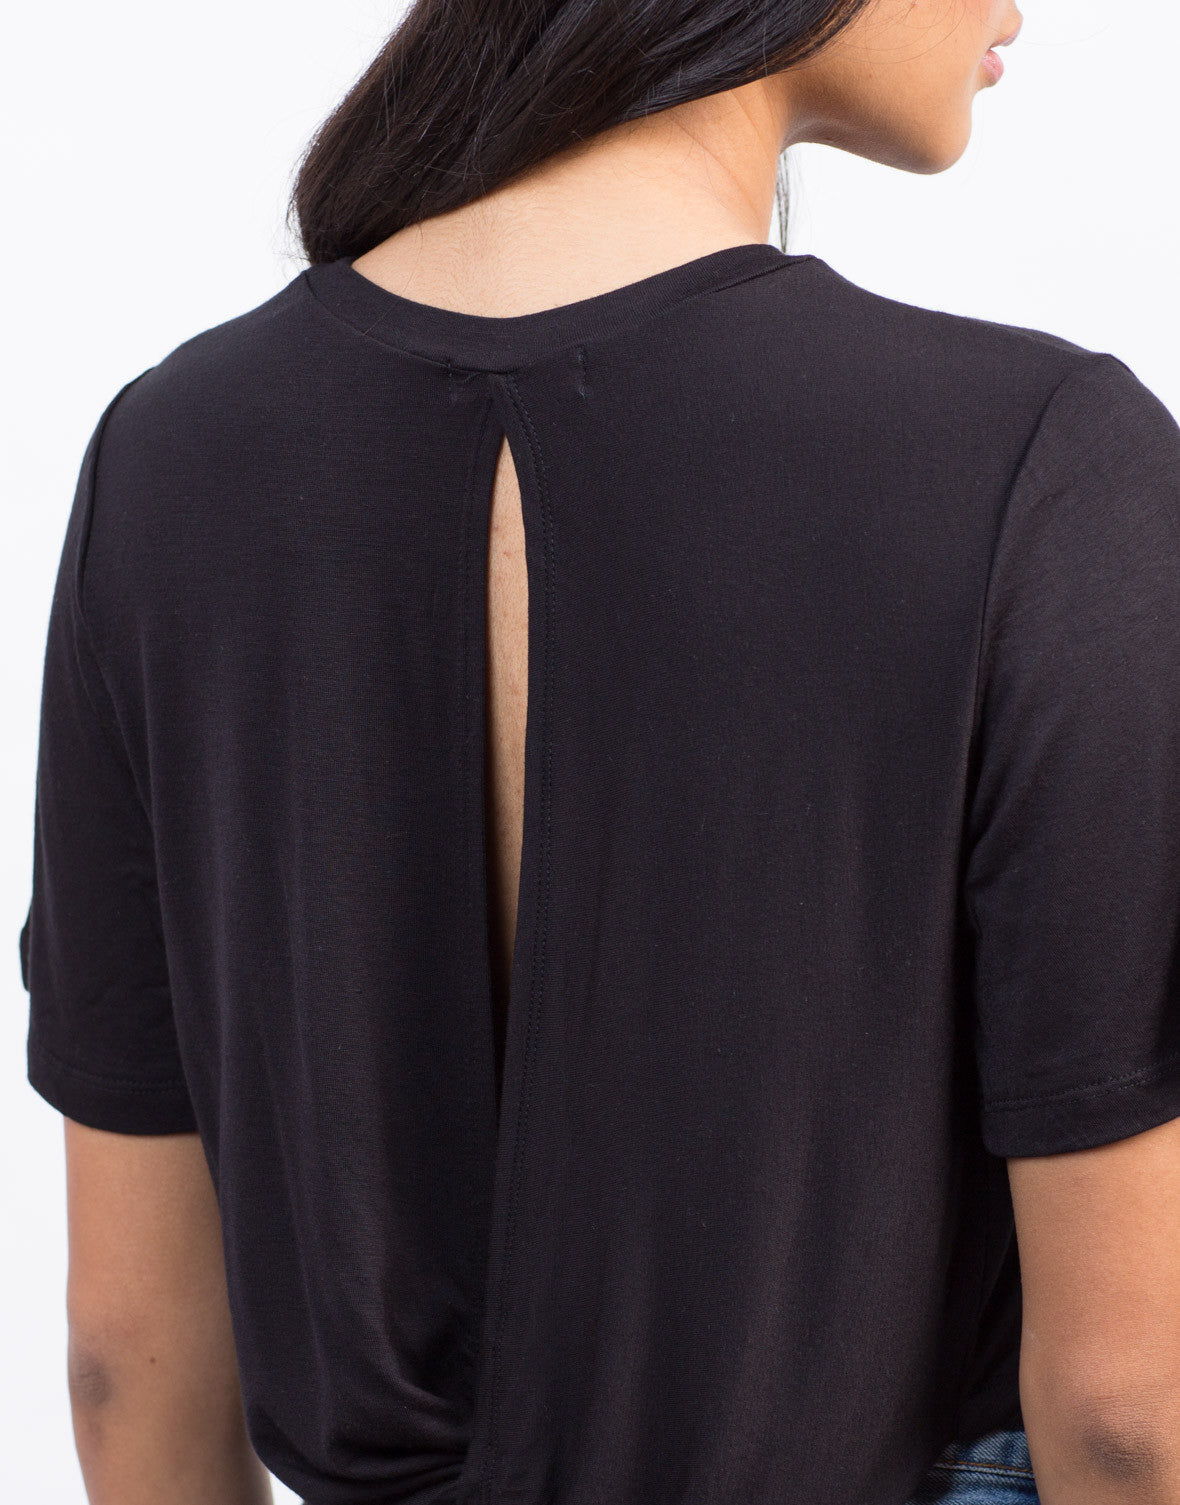 Detail of Twist Back Cropped Tee